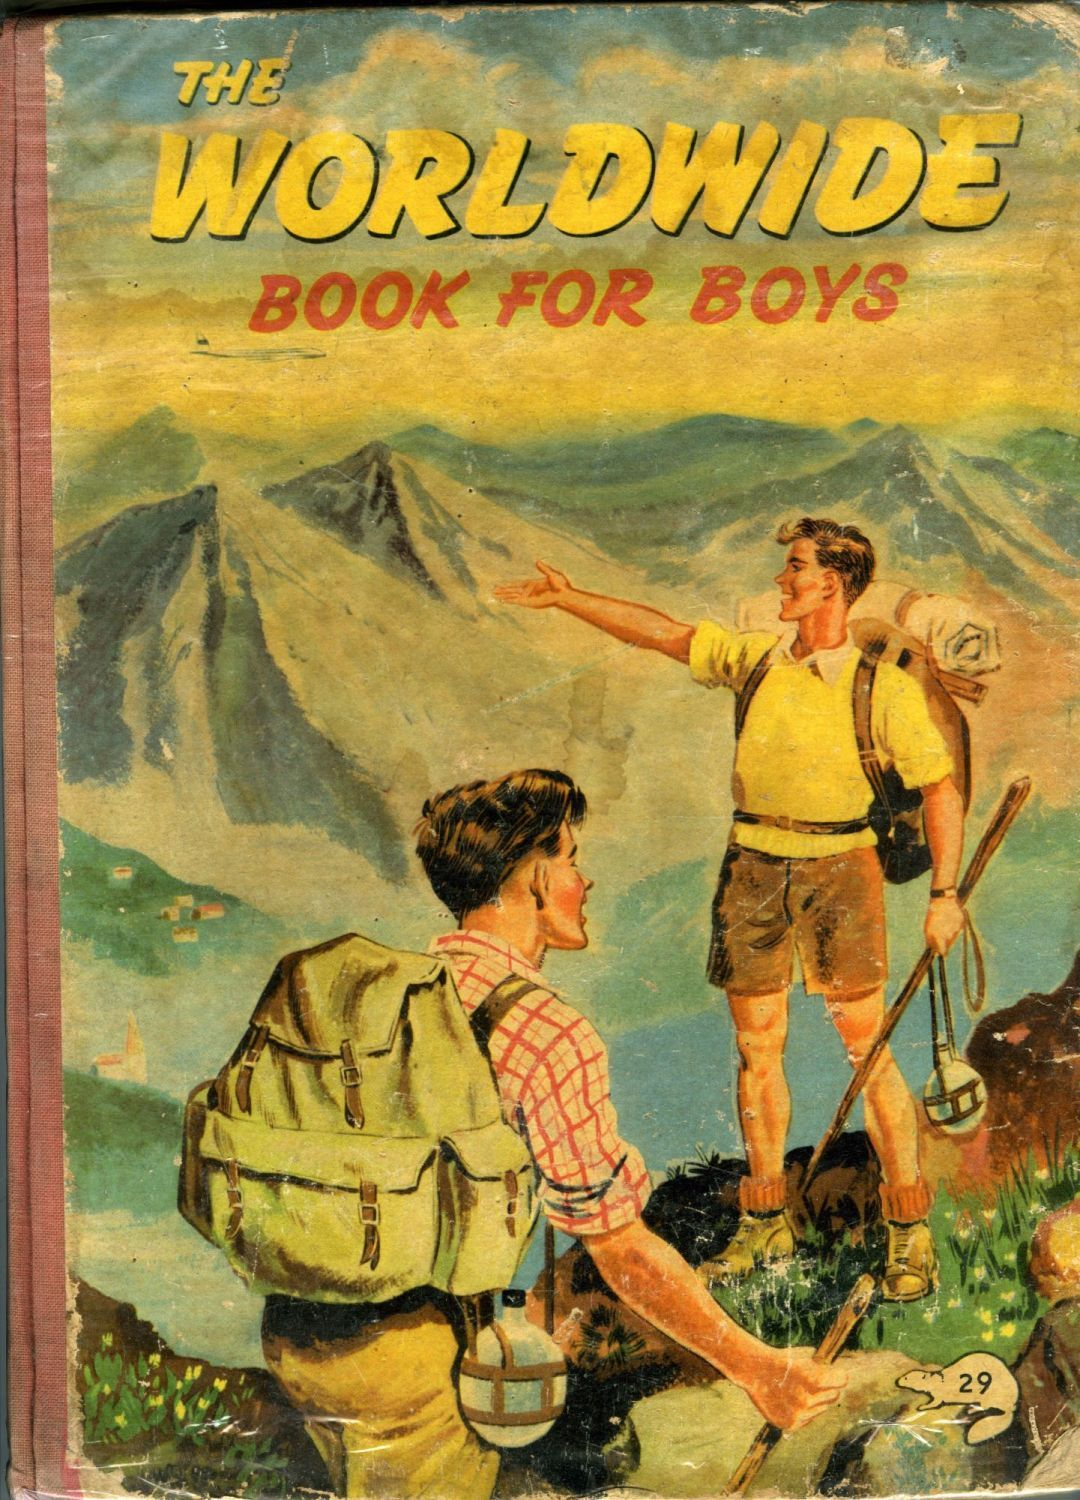 The Worldwide Book for Boys c1950s